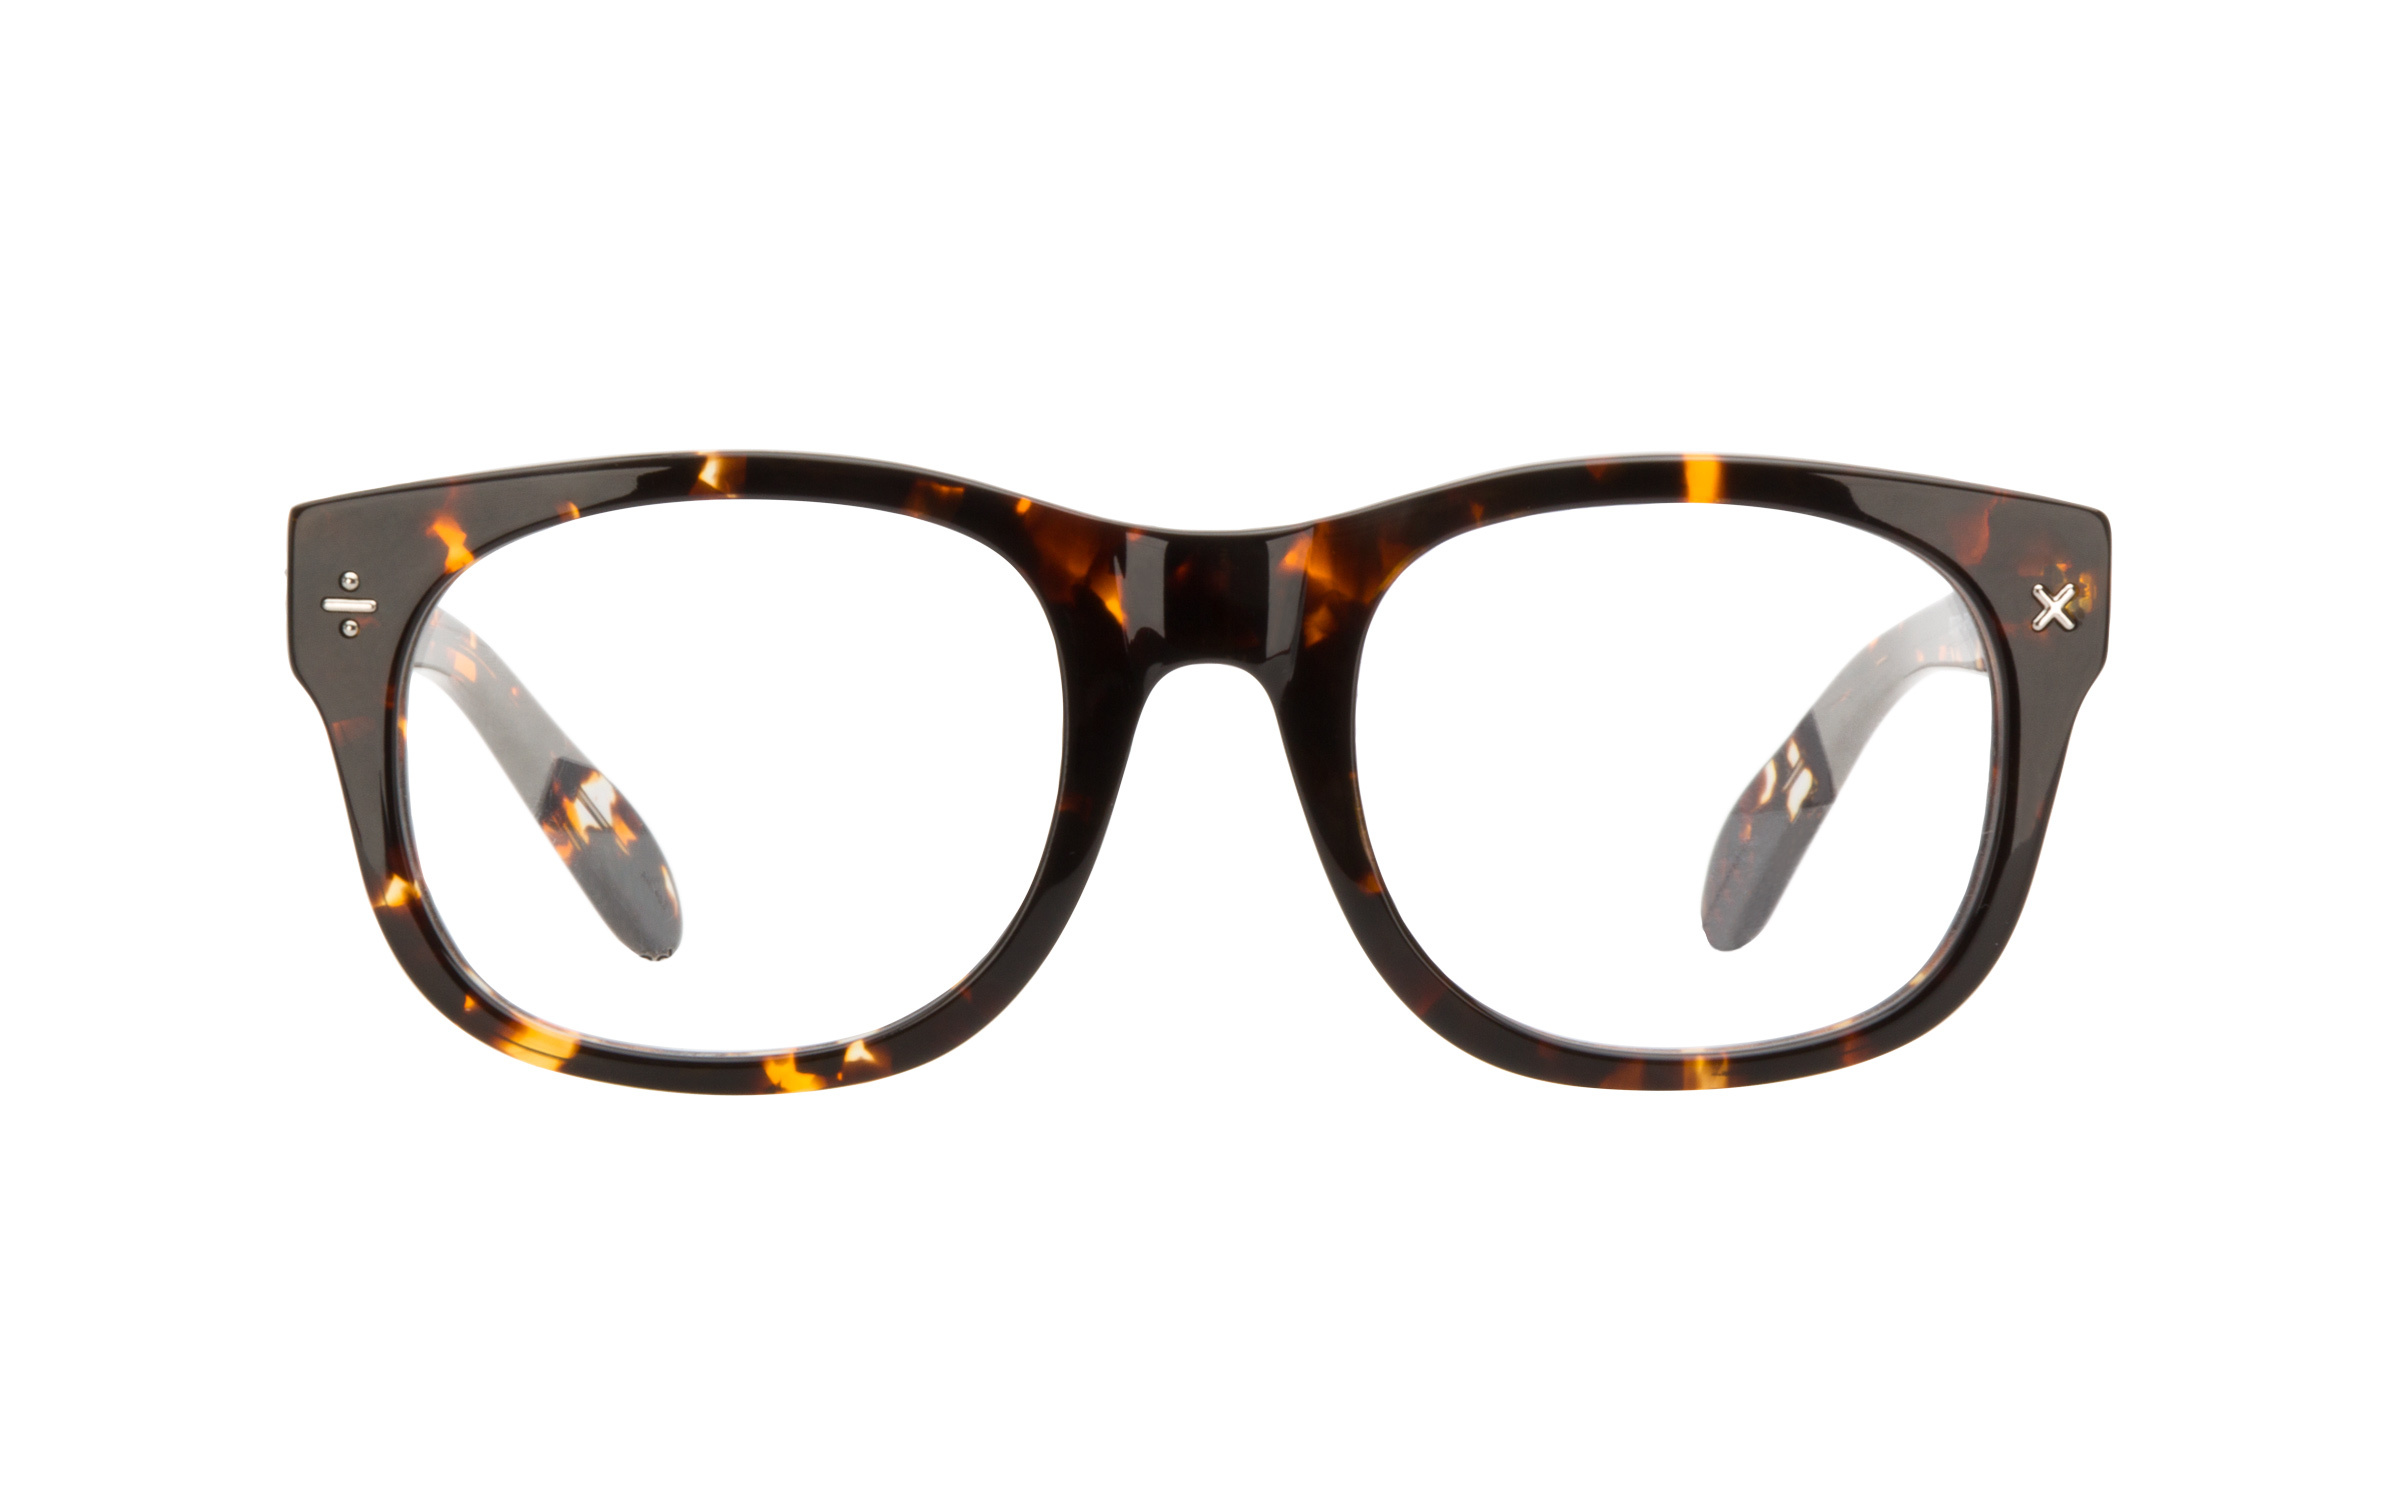 Brown_Tortoiseshell_Retro_Derek_Cardigan_Glasses__Clearly_Glasses_Online